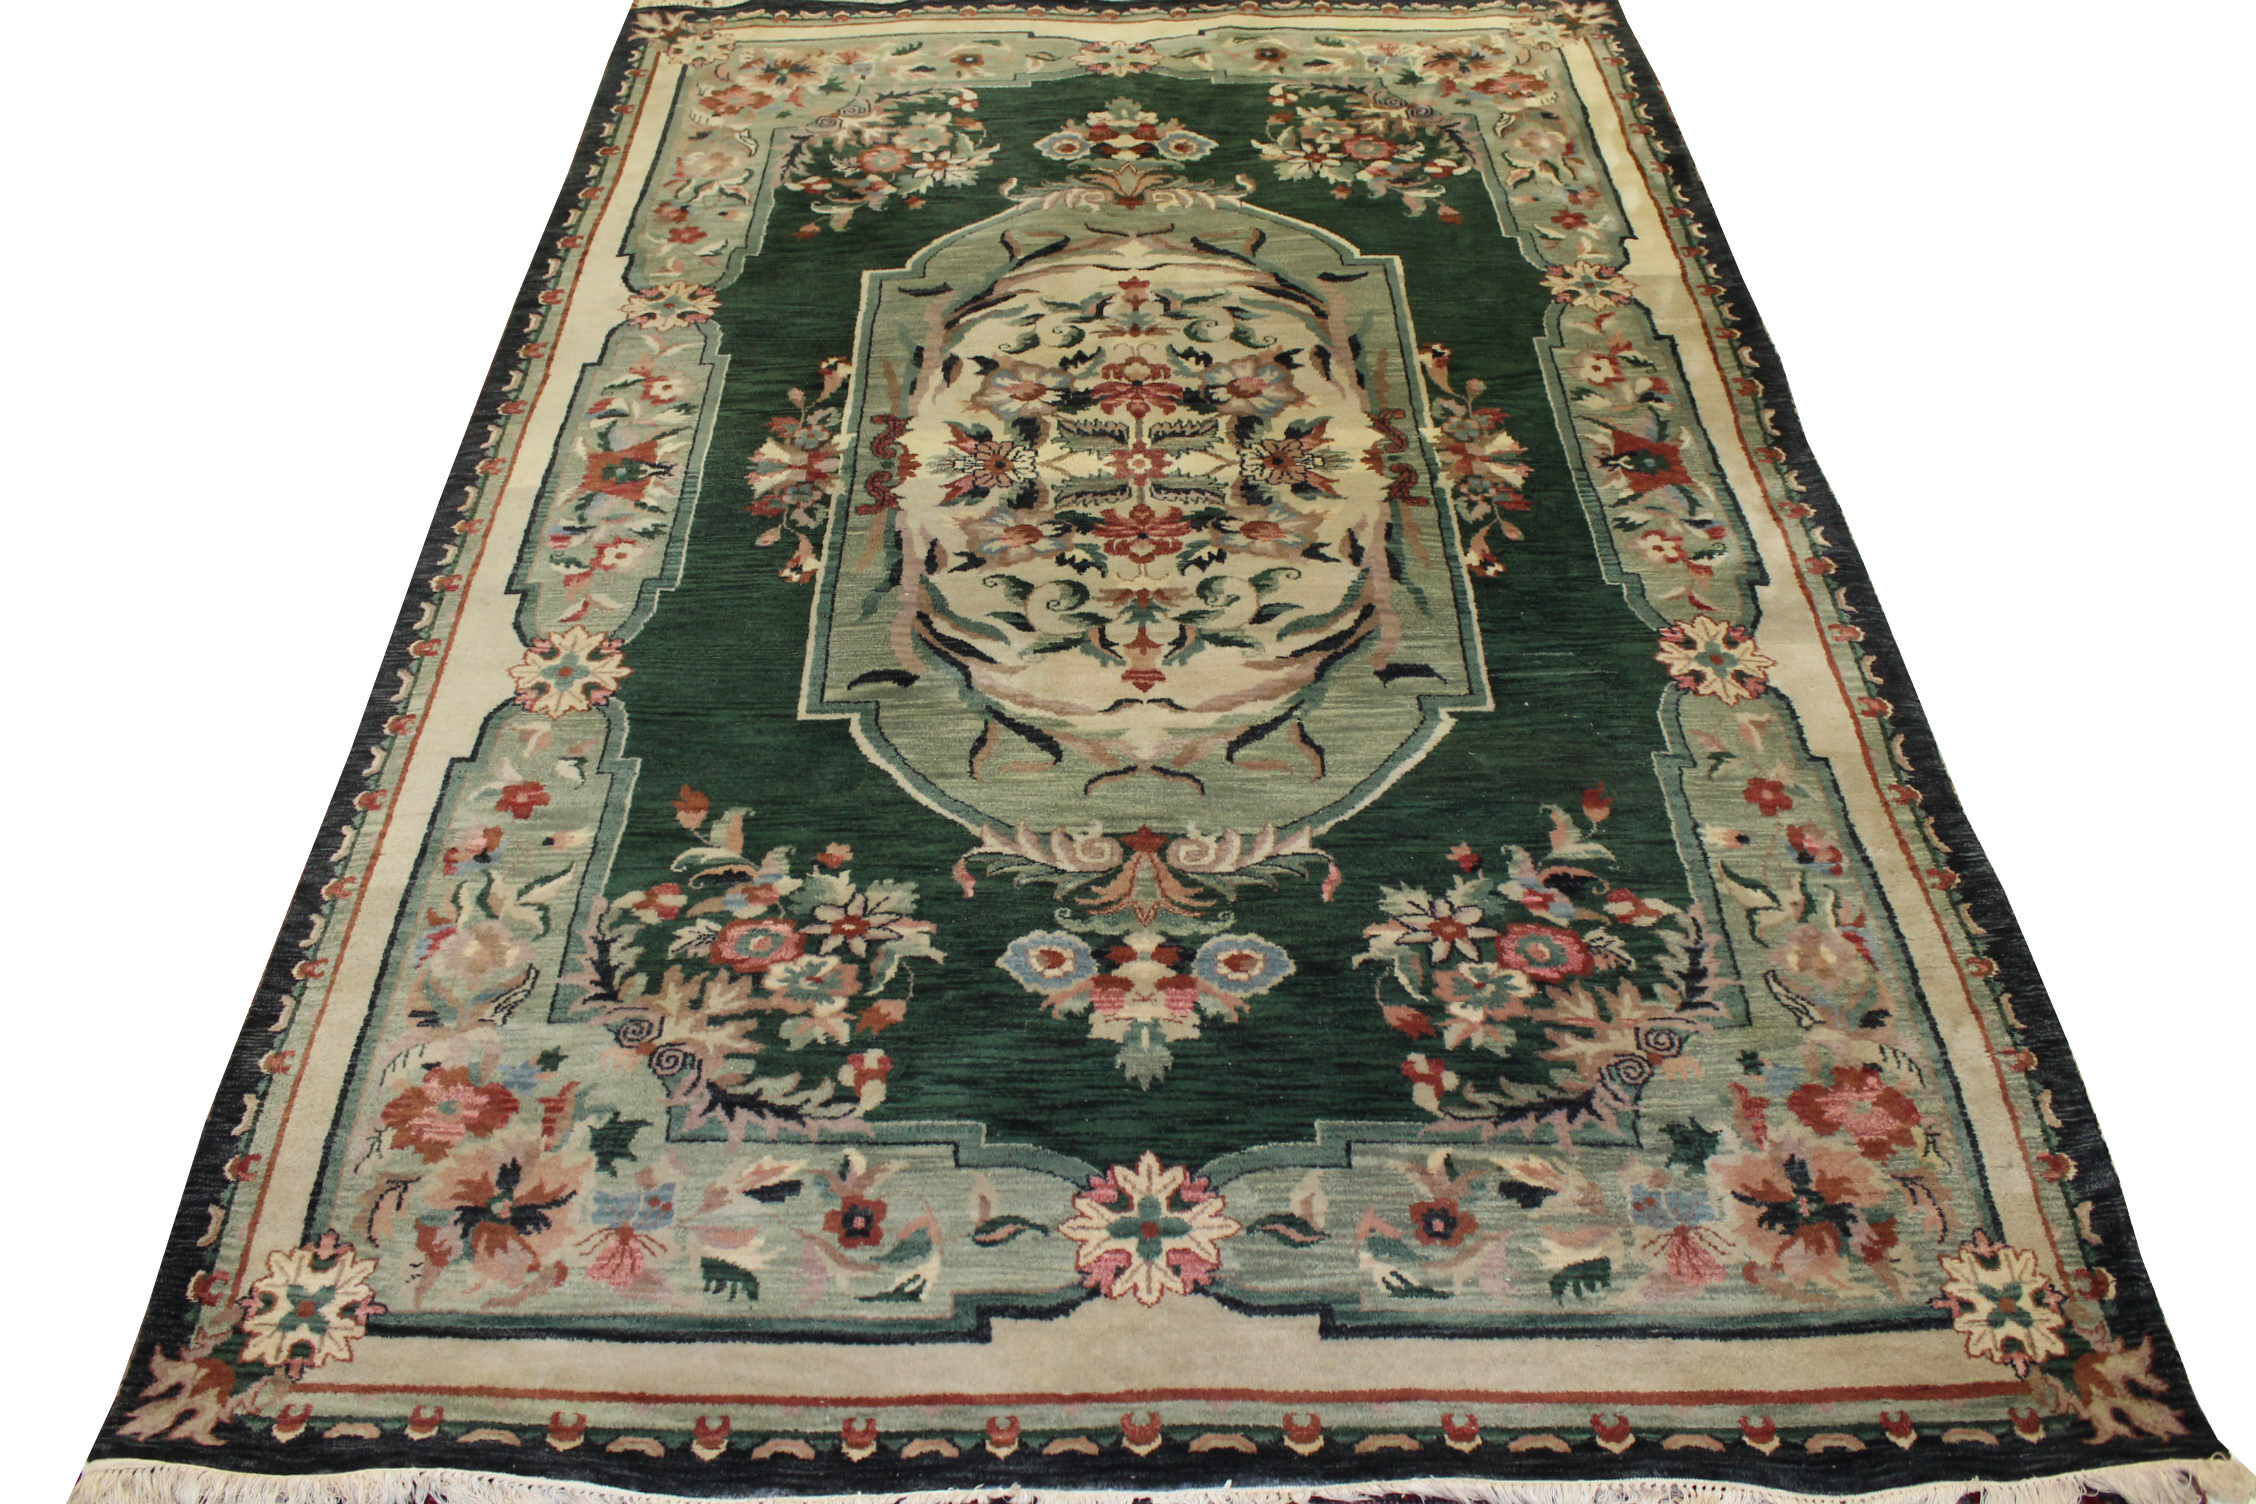 6x9 Traditional Hand Knotted Wool Area Rug - MR020187